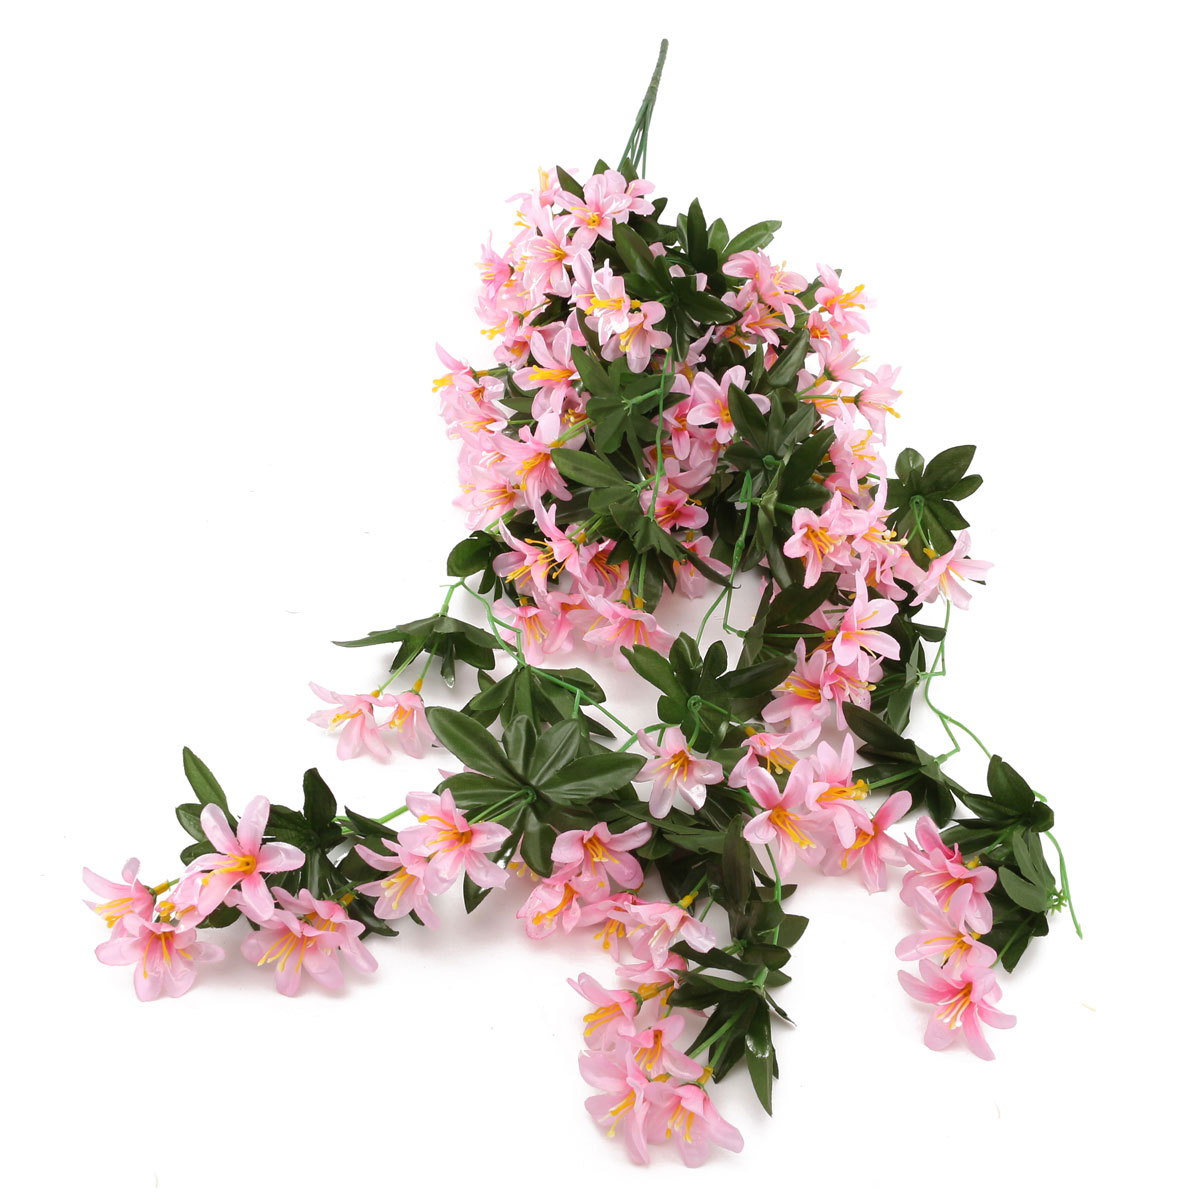 Bouquet fleur artificielle plante suspension maison jardin for Plante artificielle jardin